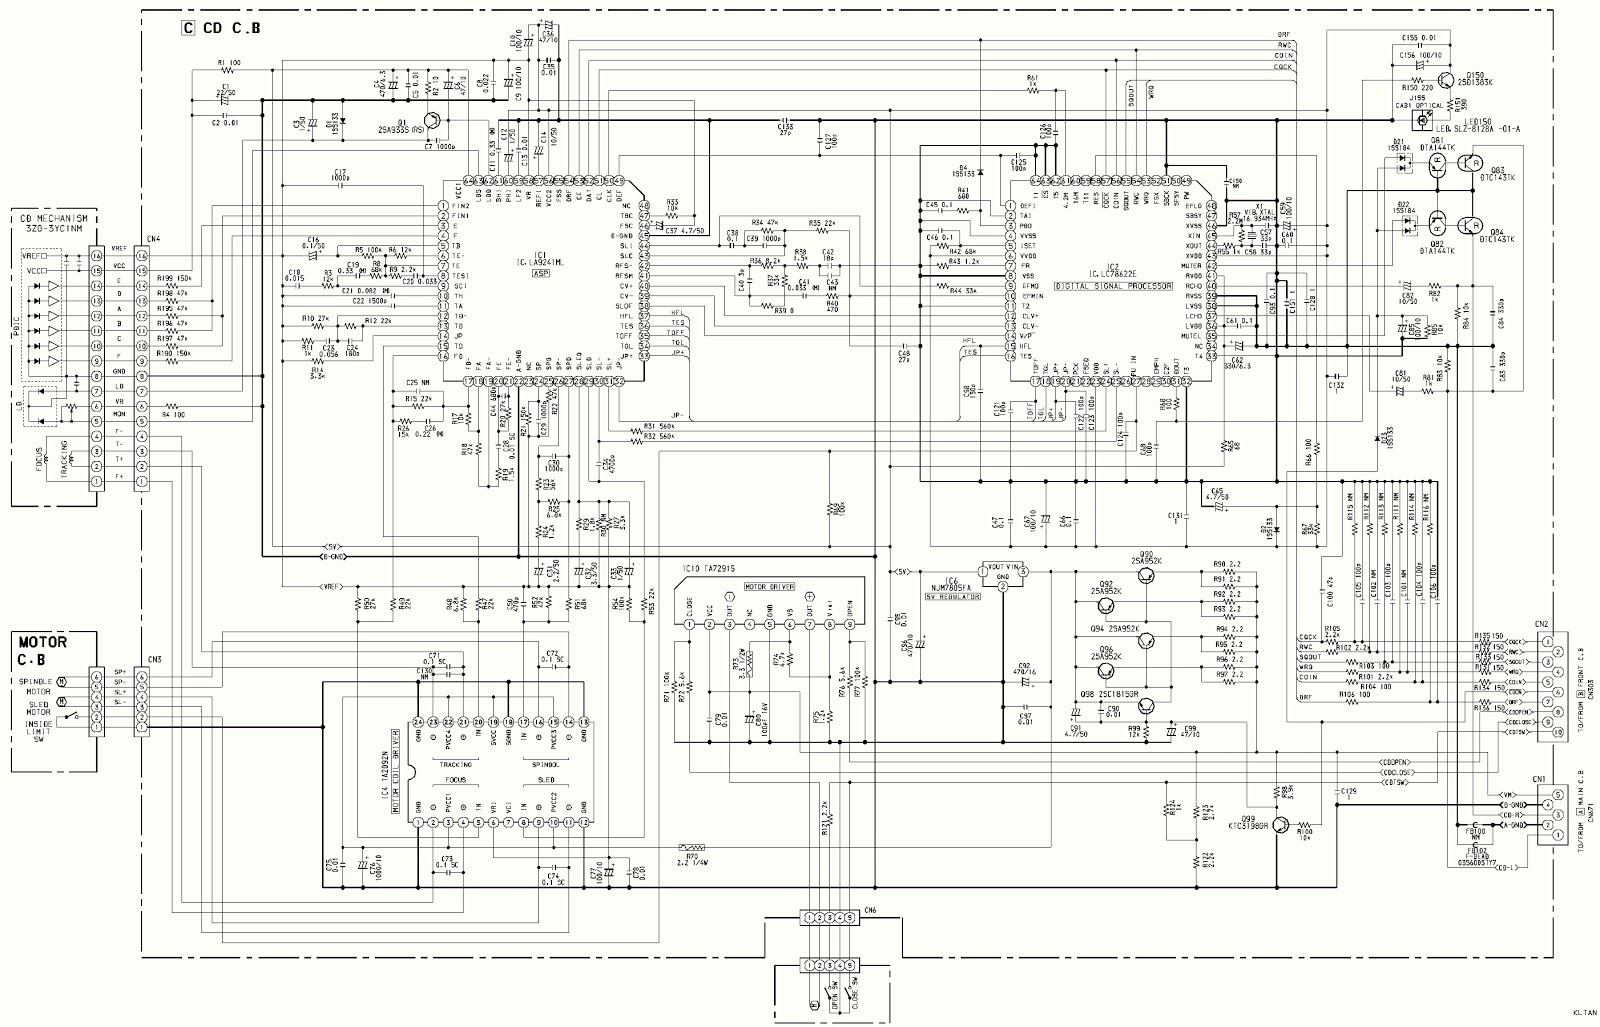 M55 Wiring Diagram. aiwa xr m55 compact disc stereo system ... on pinout diagrams, friendship bracelet diagrams, transformer diagrams, switch diagrams, lighting diagrams, electronic circuit diagrams, battery diagrams, internet of things diagrams, sincgars radio configurations diagrams, motor diagrams, hvac diagrams, gmc fuse box diagrams, troubleshooting diagrams, electrical diagrams, led circuit diagrams, engine diagrams, series and parallel circuits diagrams, smart car diagrams, honda motorcycle repair diagrams,